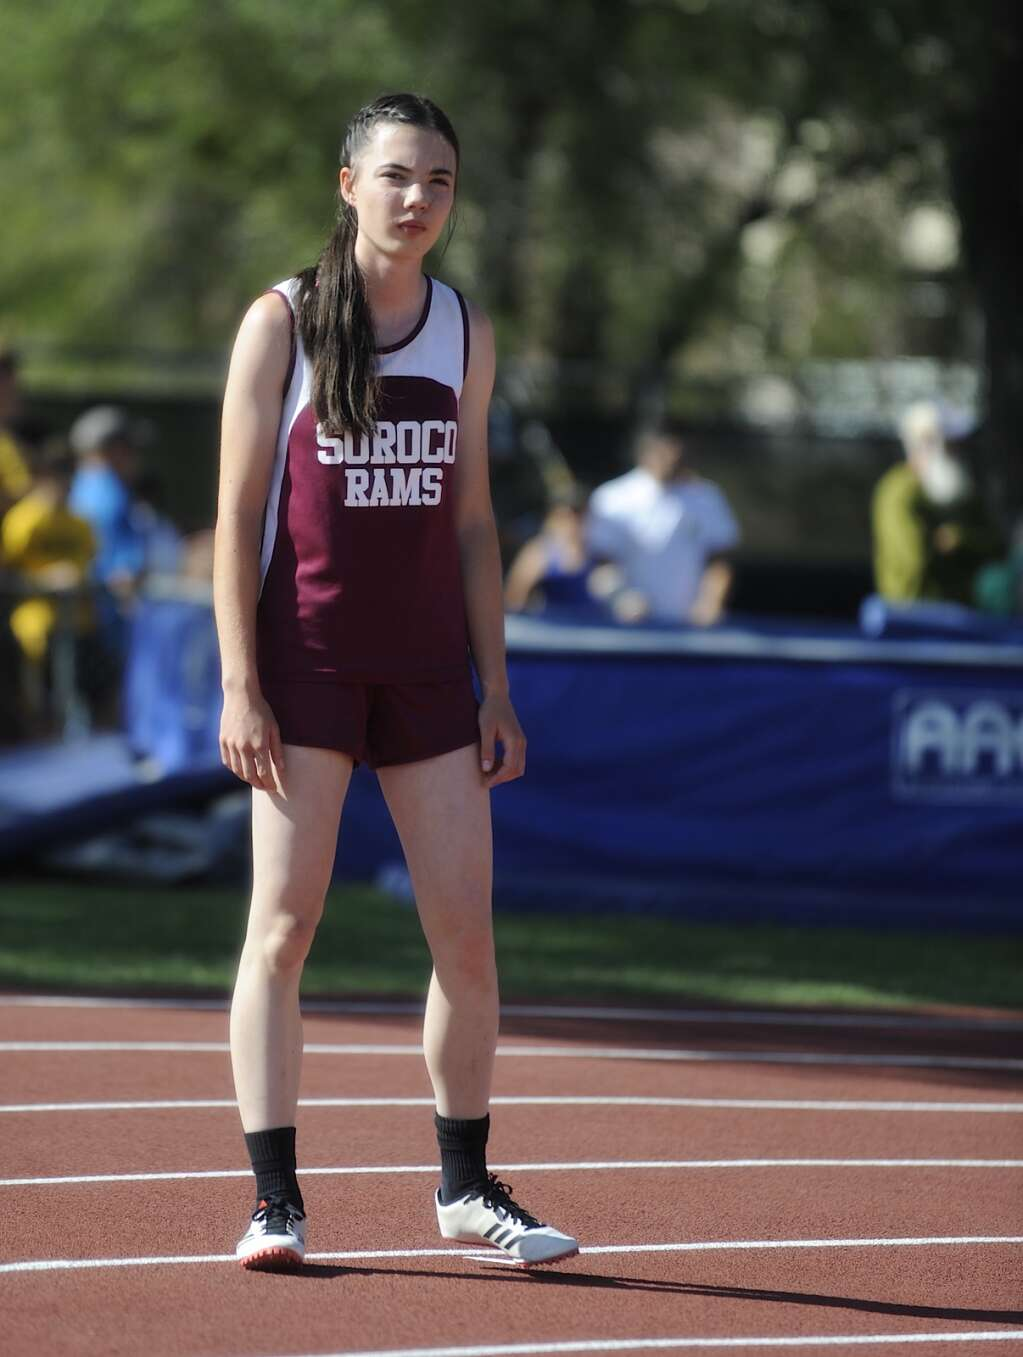 Soroco's Marissa Martindale gets serious ahead of the 4x100 prelims at the CHSAA Track and Field State Championships at JeffCo Stadium on Friday. (Photo by Shelby Reardon)